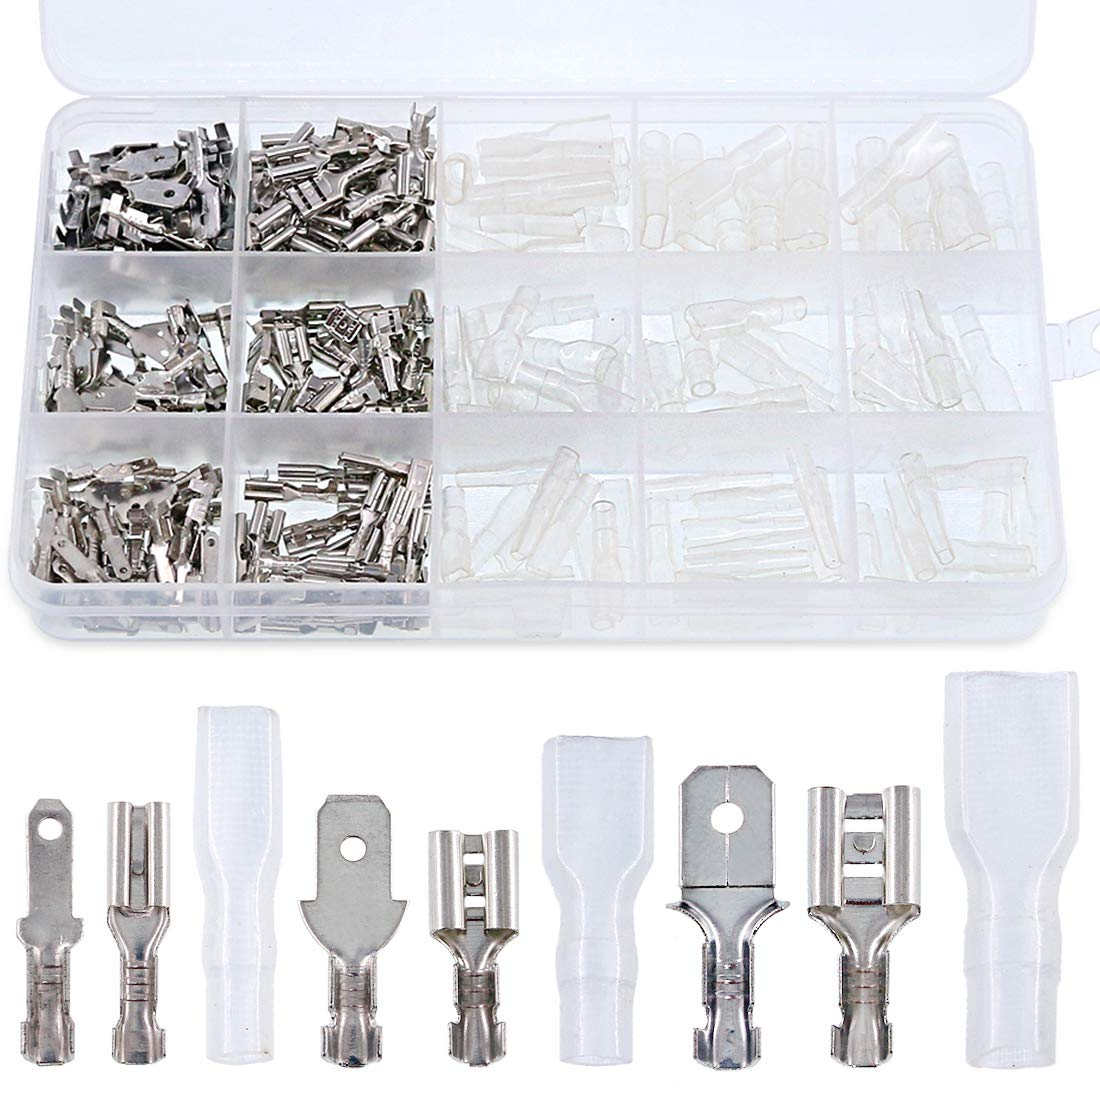 Glarks 315Pcs Quick Splice 2.8mm 4.8mm 6.3mm Male and Female Wire Spade Connector Wire Crimp Terminal Block with Insulating Sleeve Assortment Kit